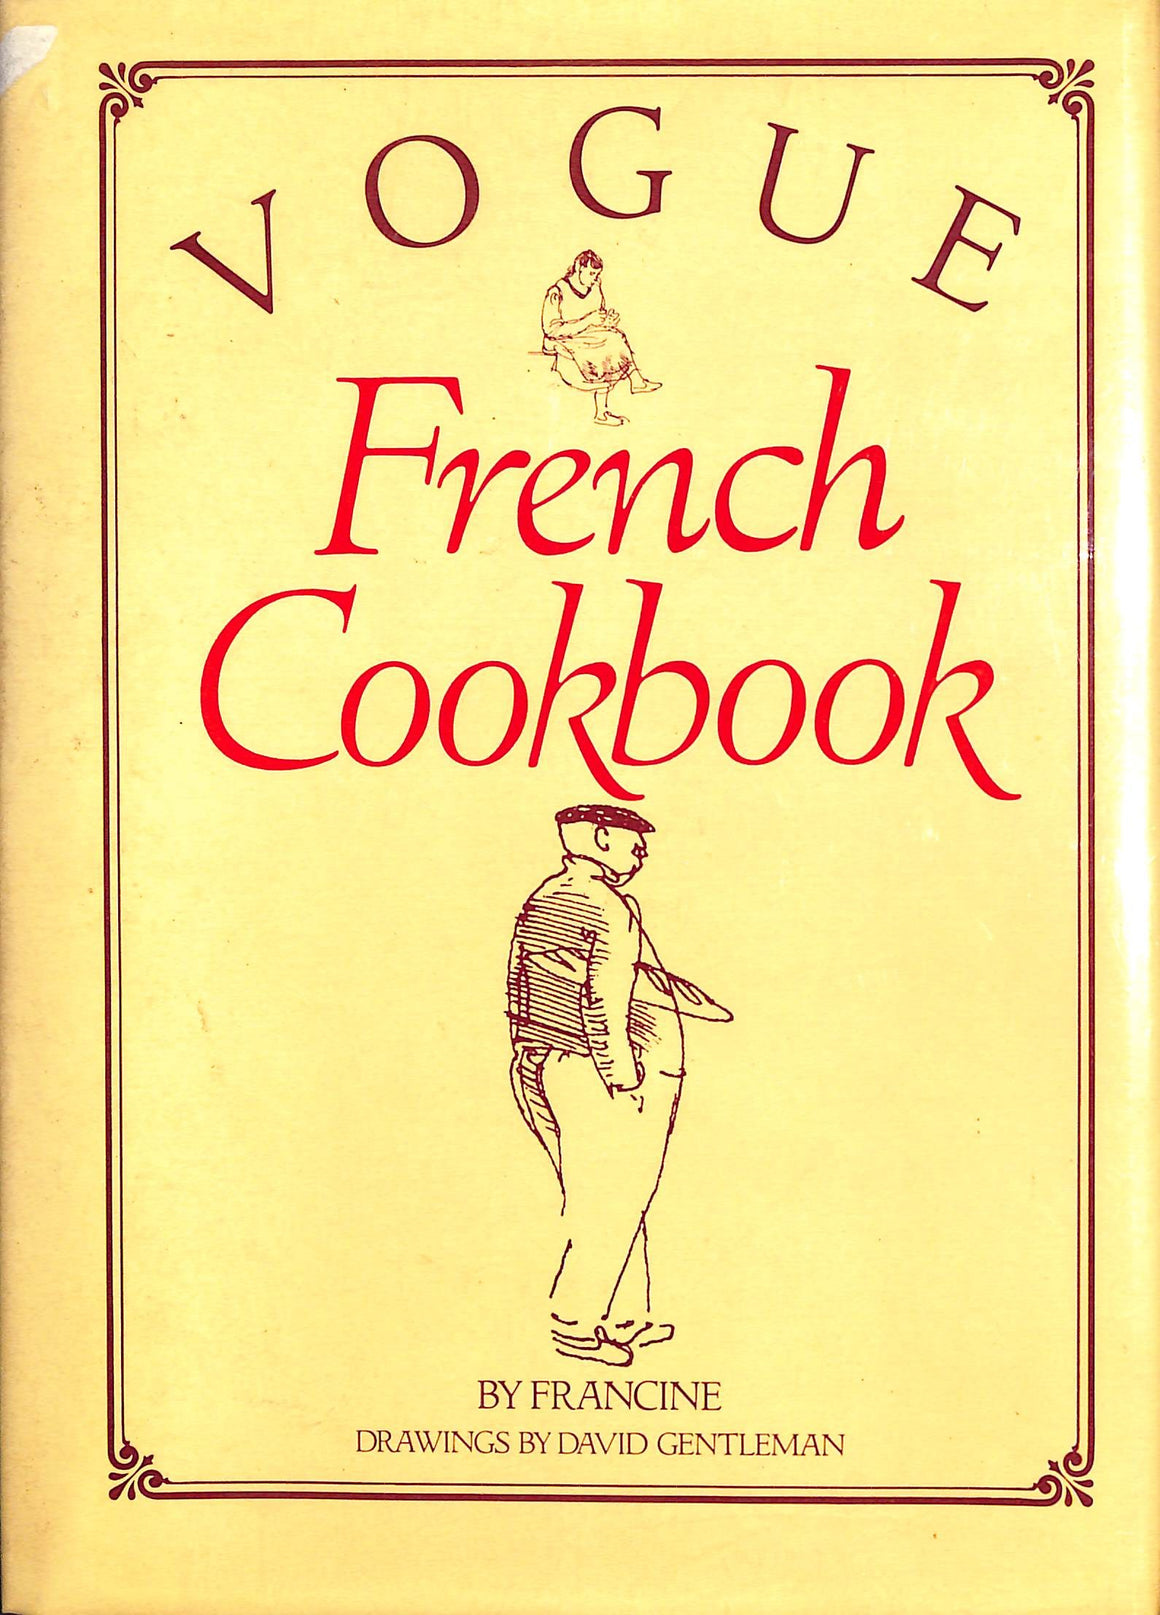 Vogue French Cookbook by 'Francine'